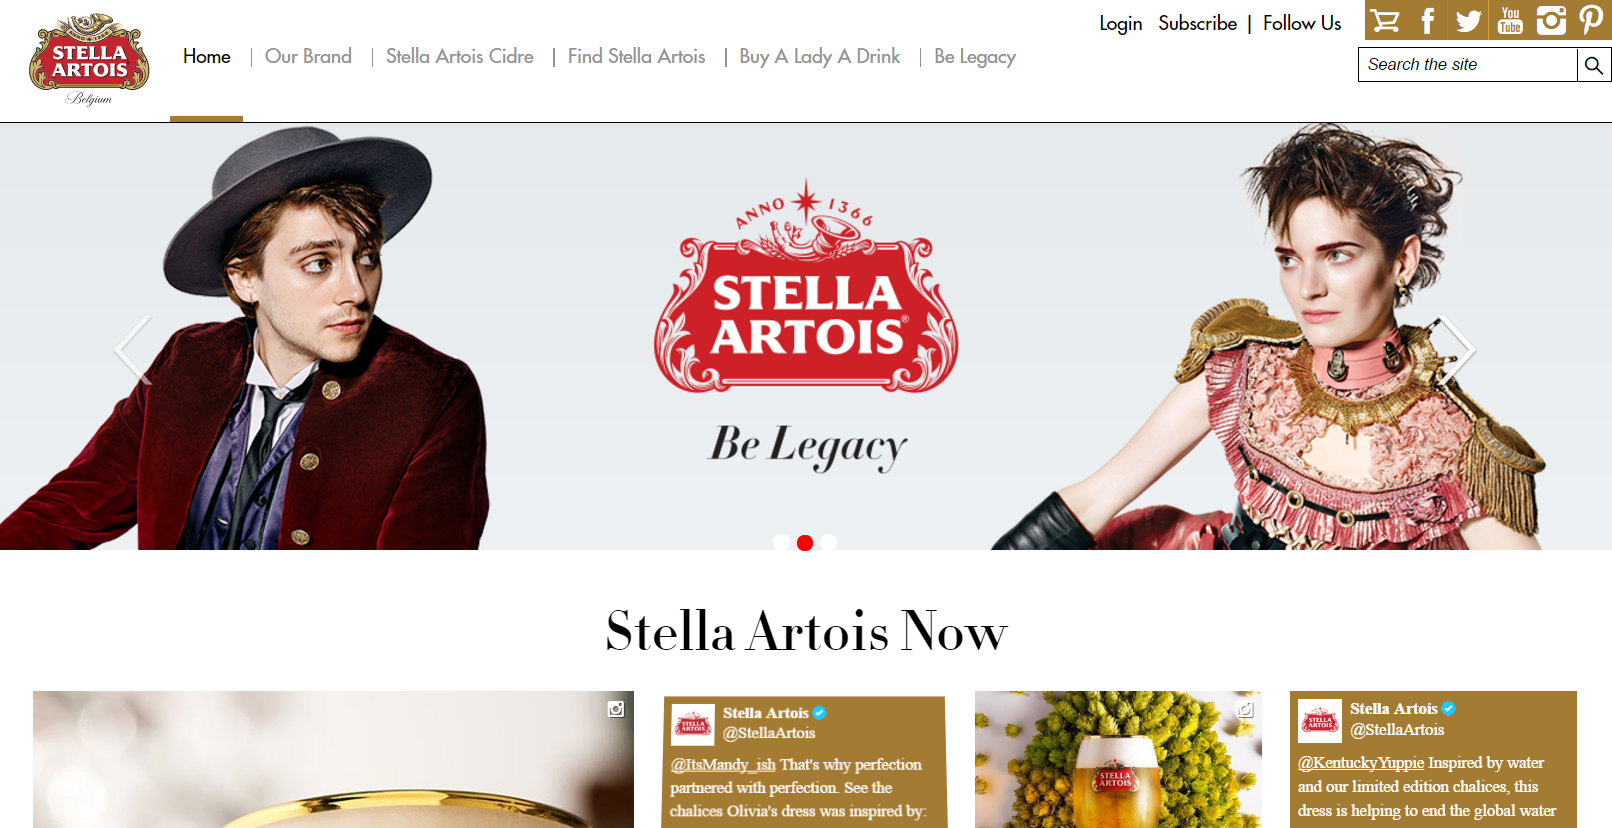 Tagine examples: Stella Artois, Be Legacy